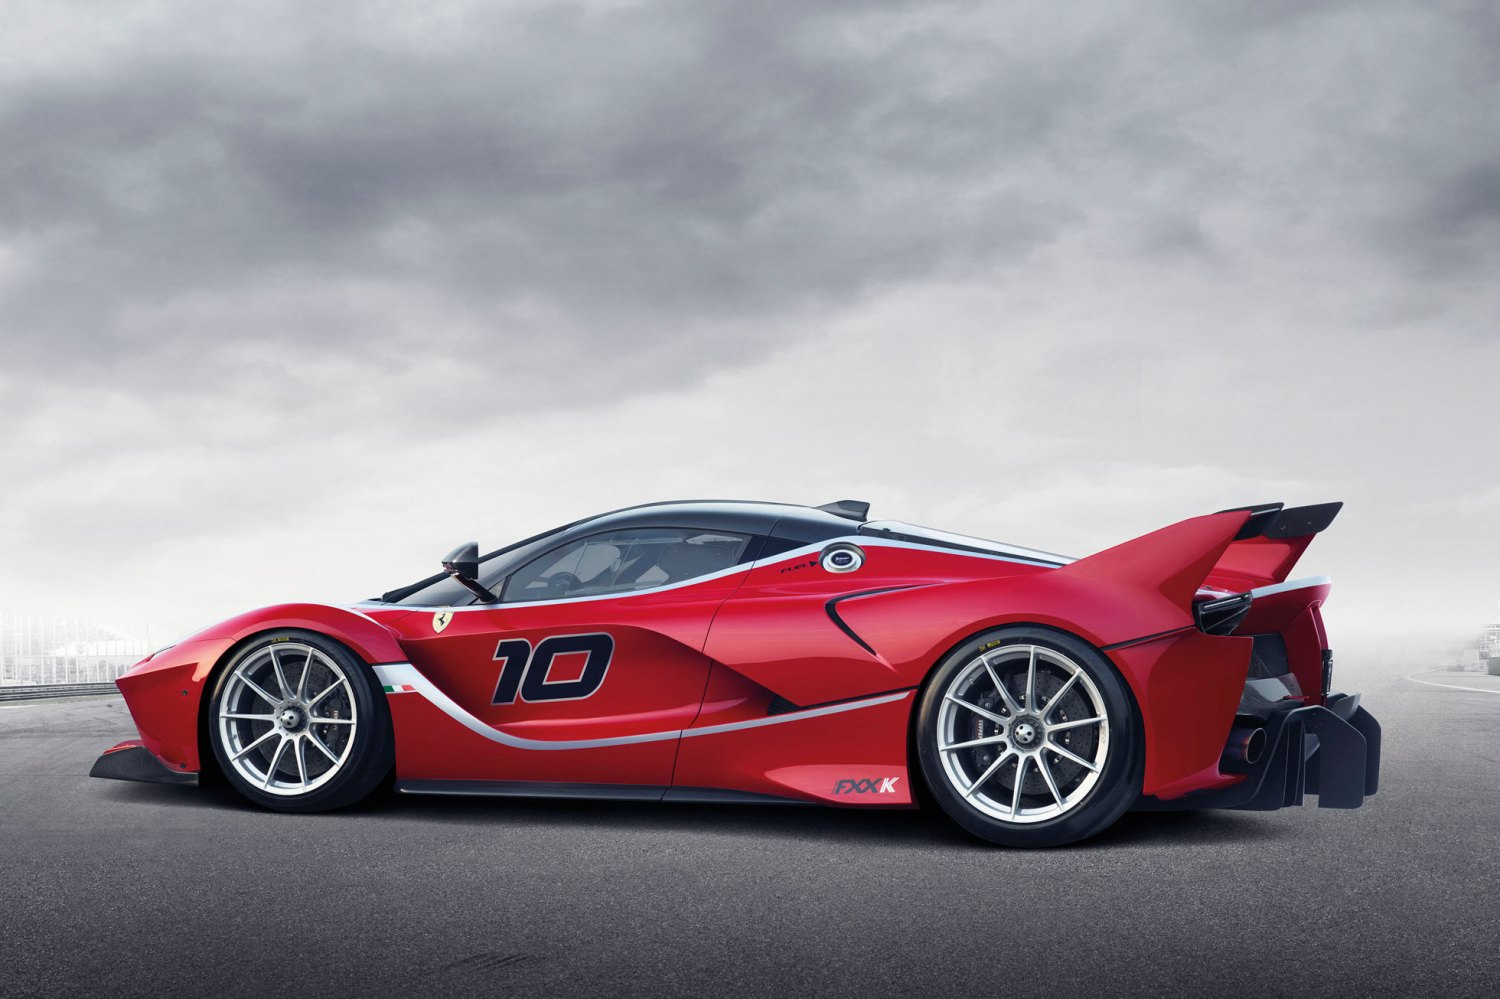 Ferrari announces 1,050hp FXX K